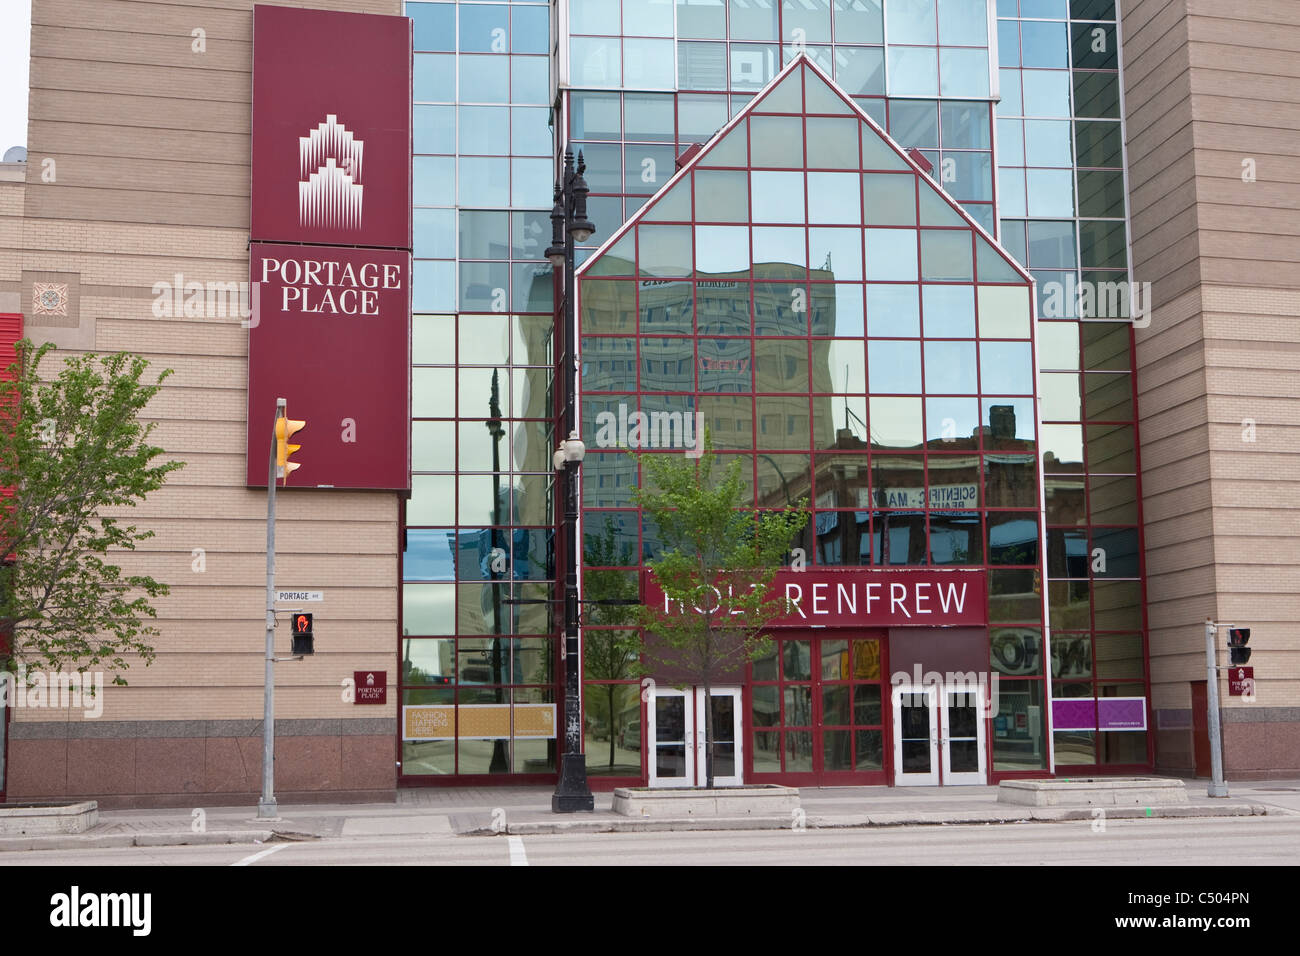 Portage Place is pictured in Winnipeg - Stock Image